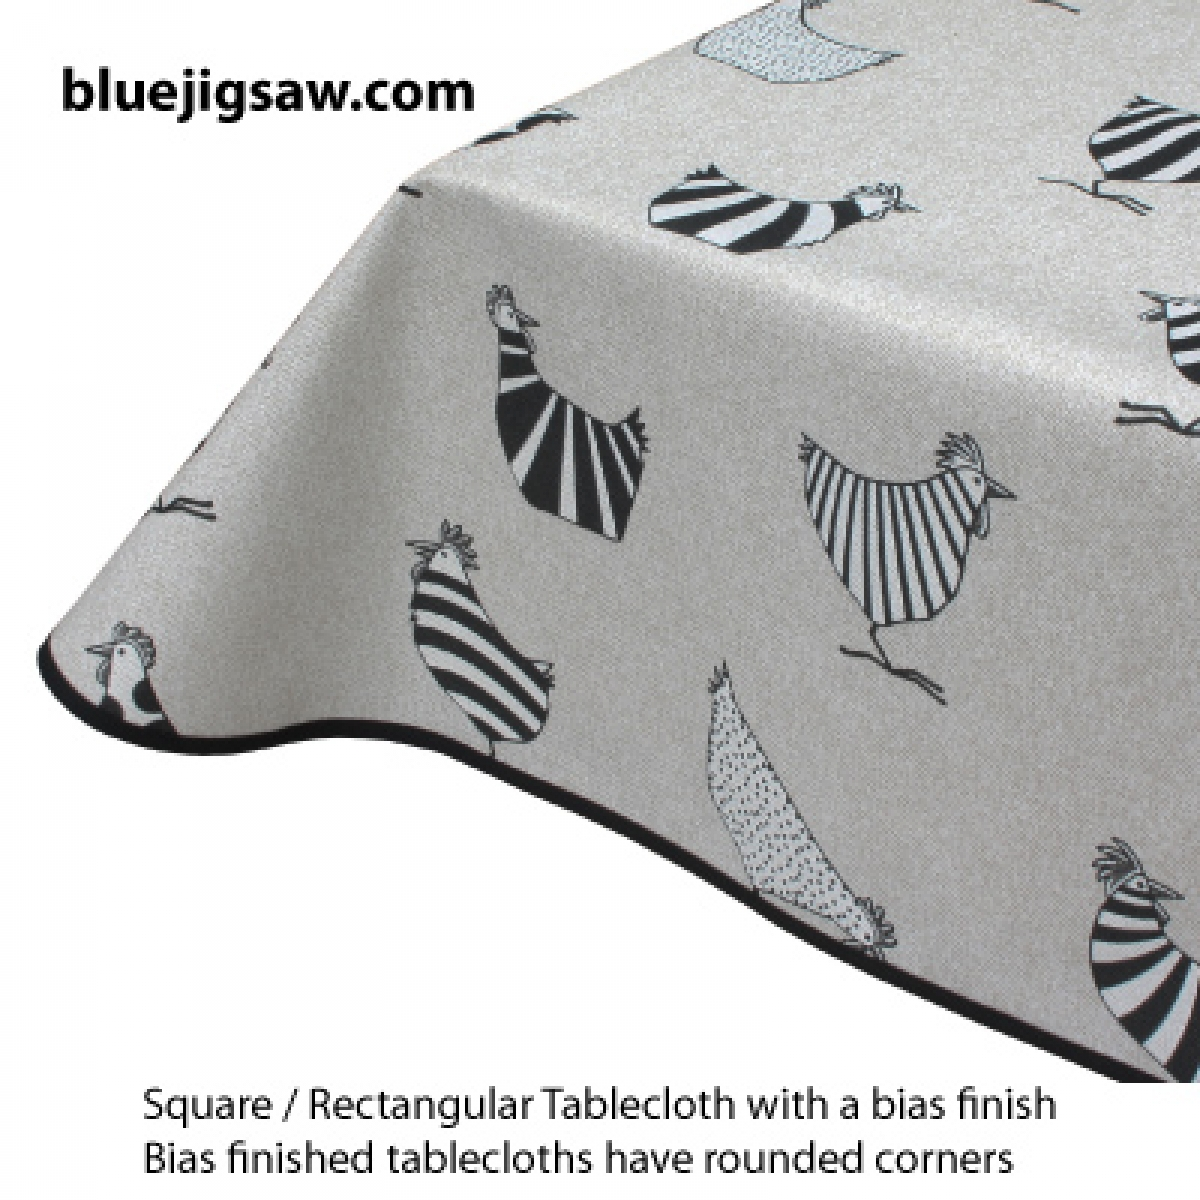 Acrylic Coated Tablecloths - Edge Finishing